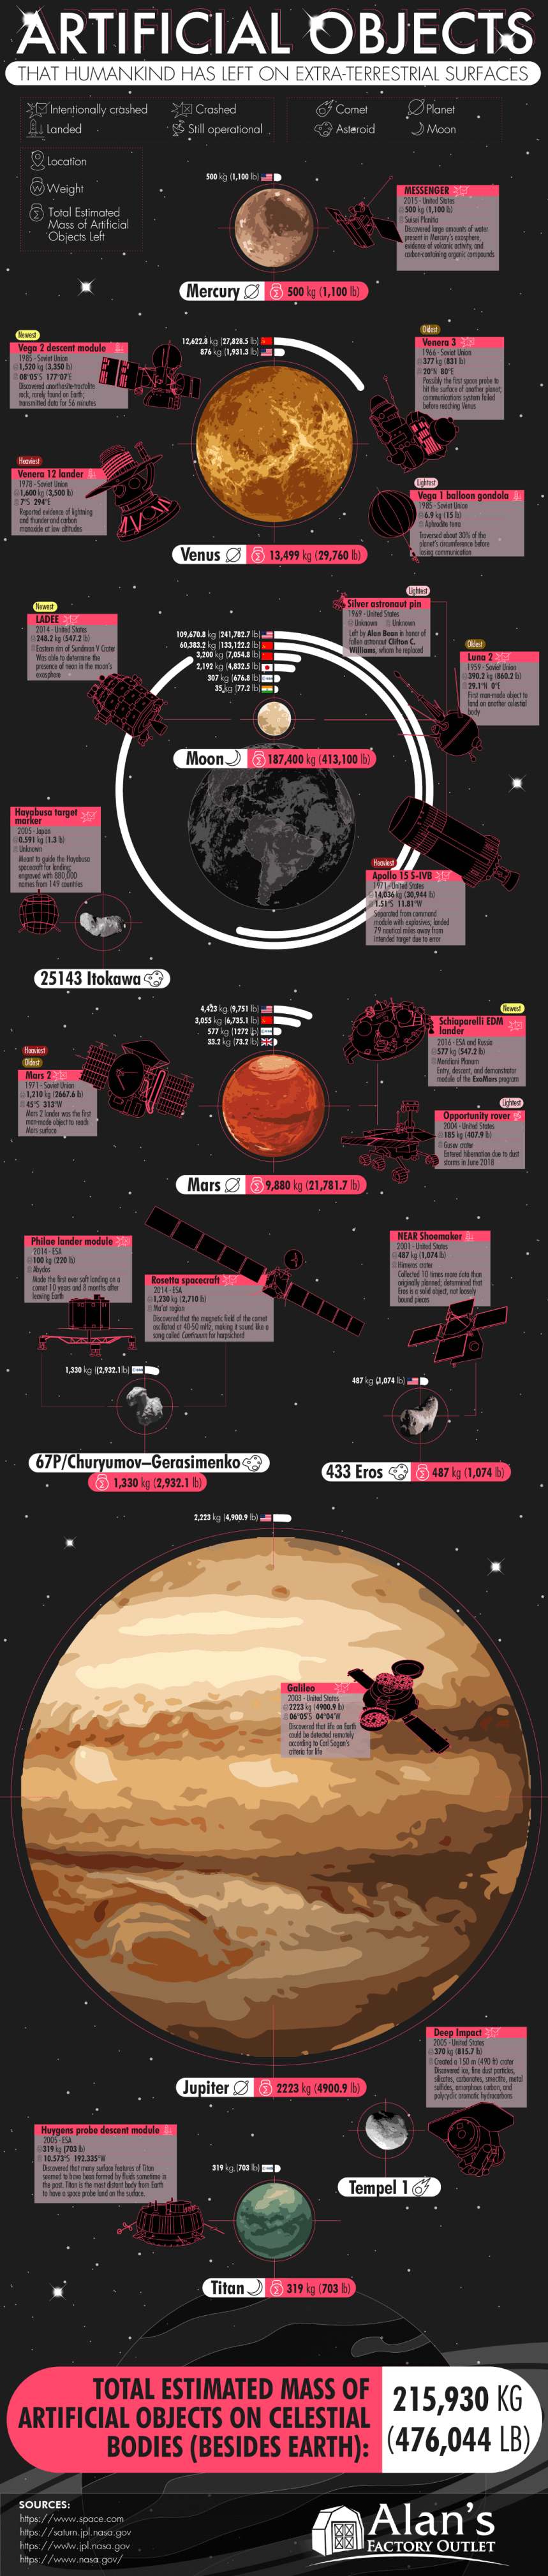 Artificial Objects That Humankind Has Left on Extra-Terrestrial Surfaces - AlansFactoryOutlet.com - Infographic